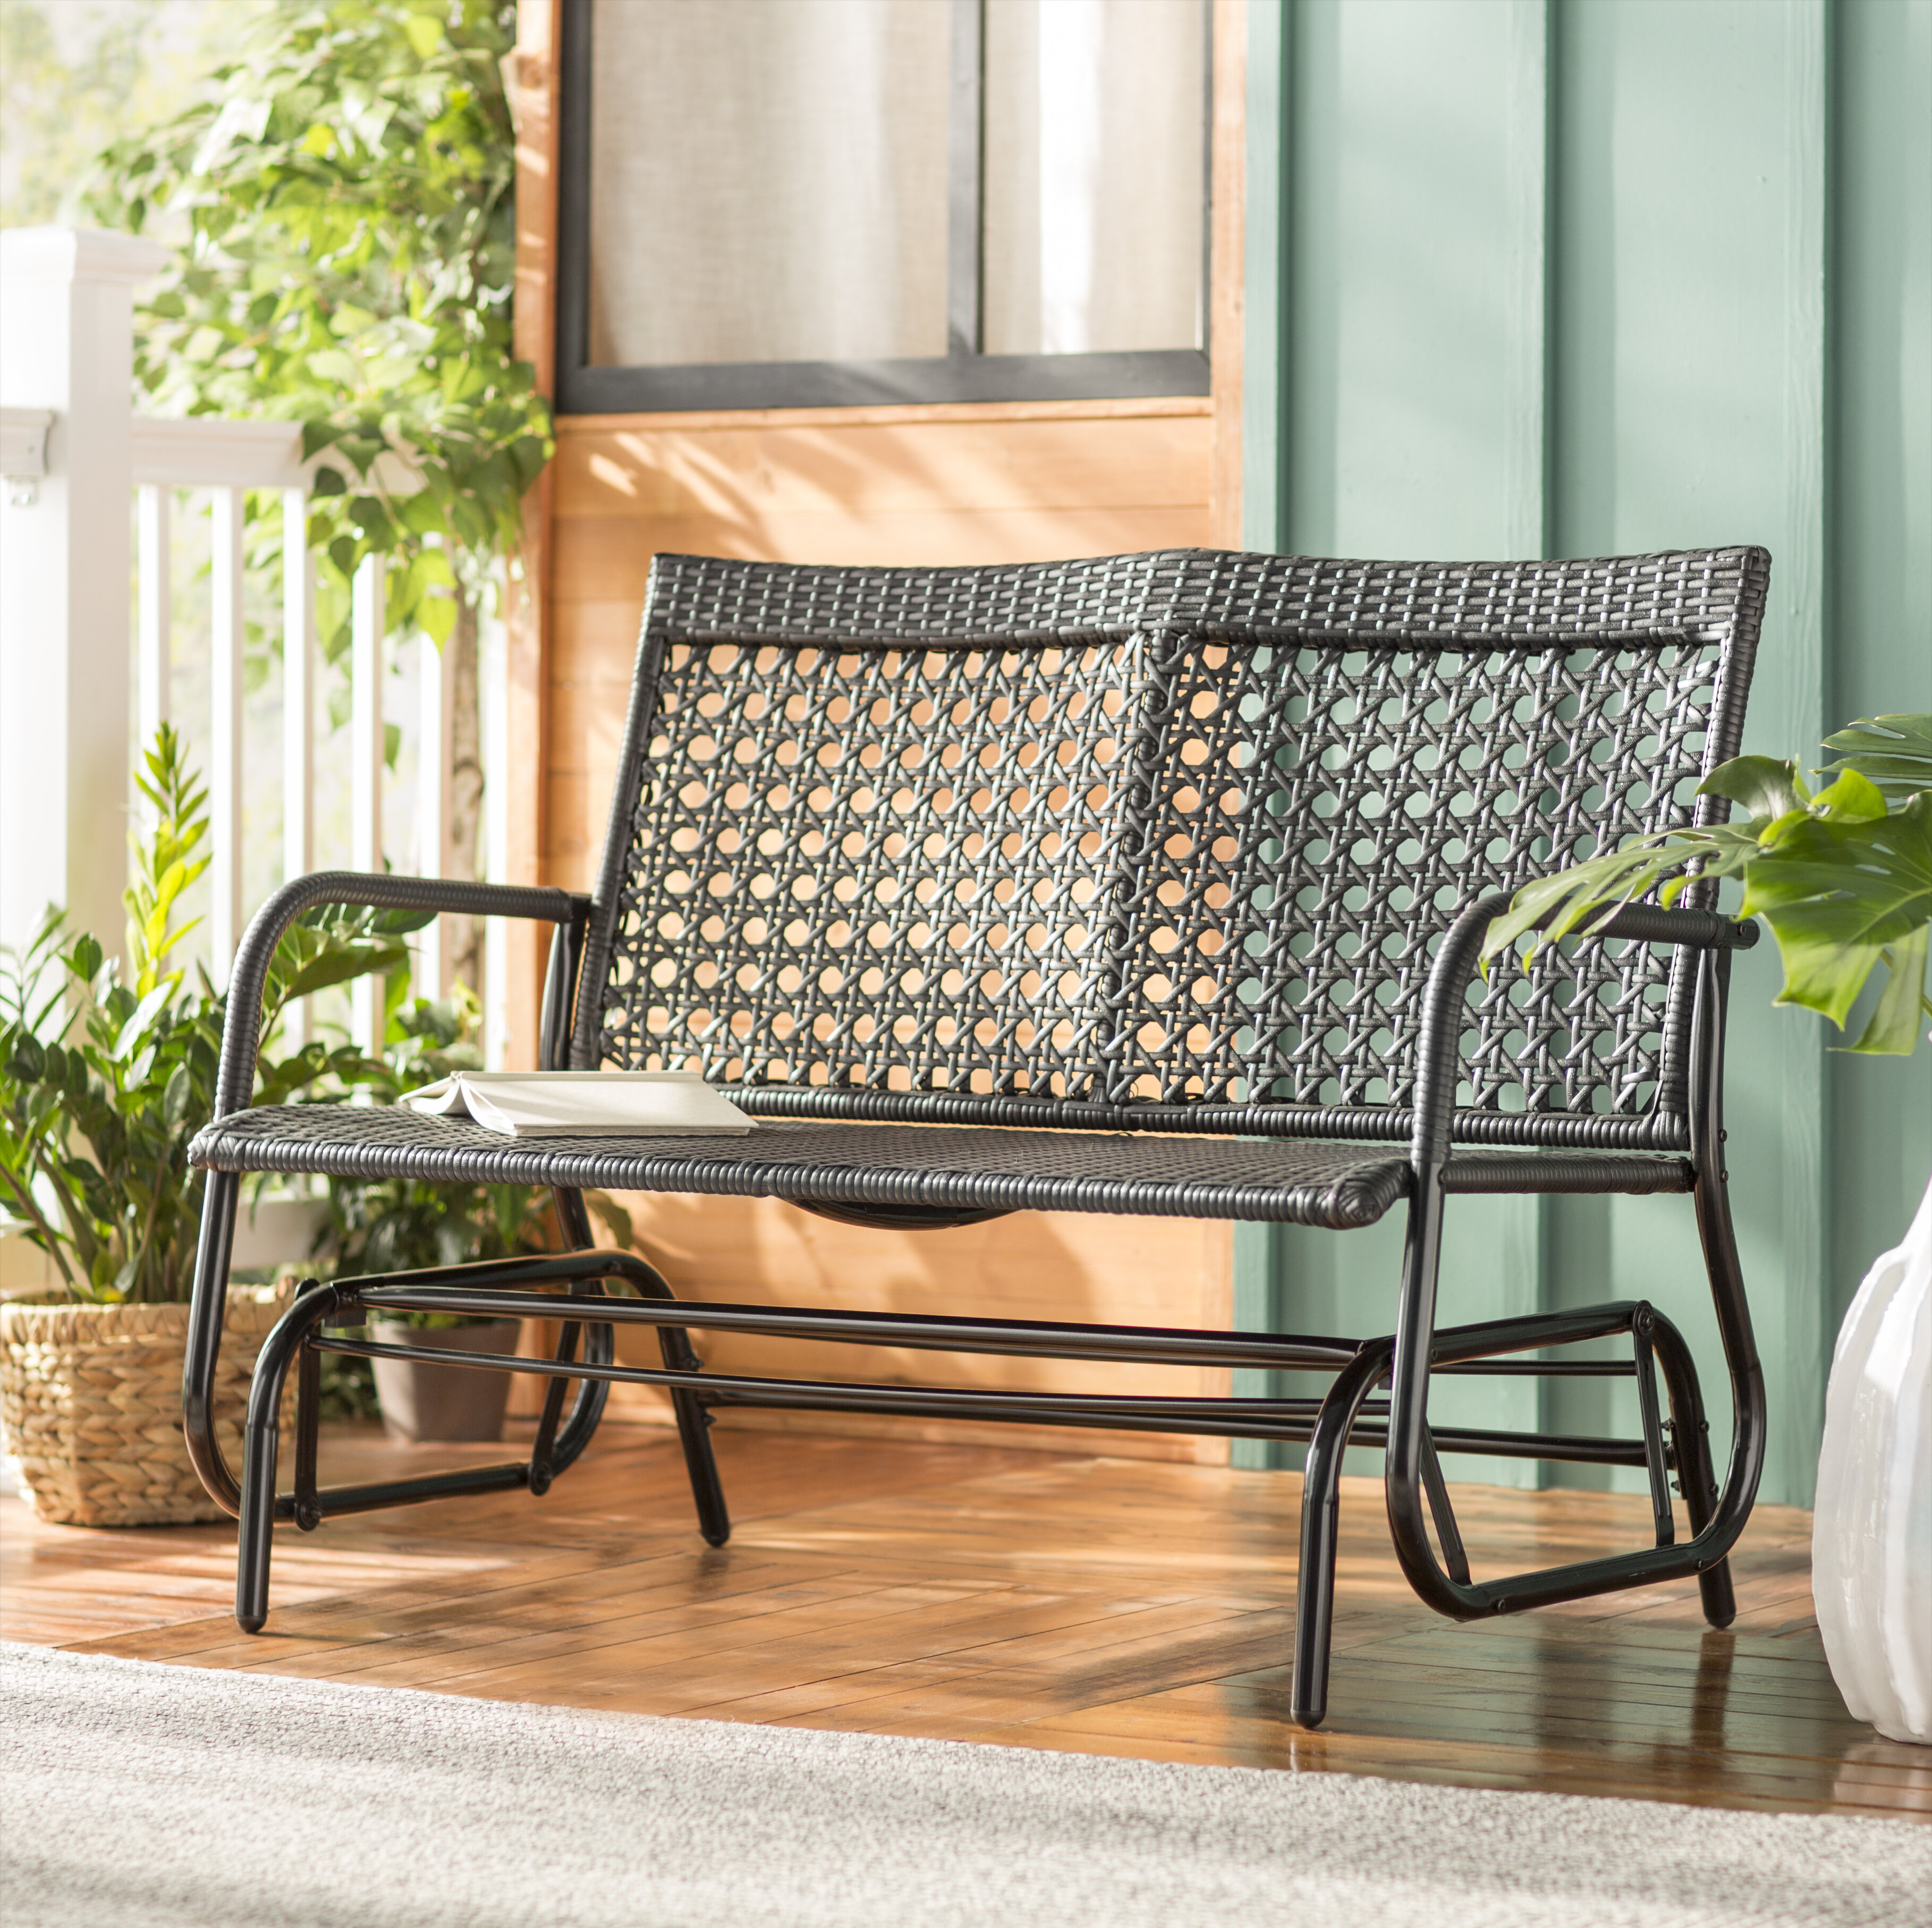 Super Shupe Steel Rattan Outdoor Patio Double Glider Bench Short Links Chair Design For Home Short Linksinfo